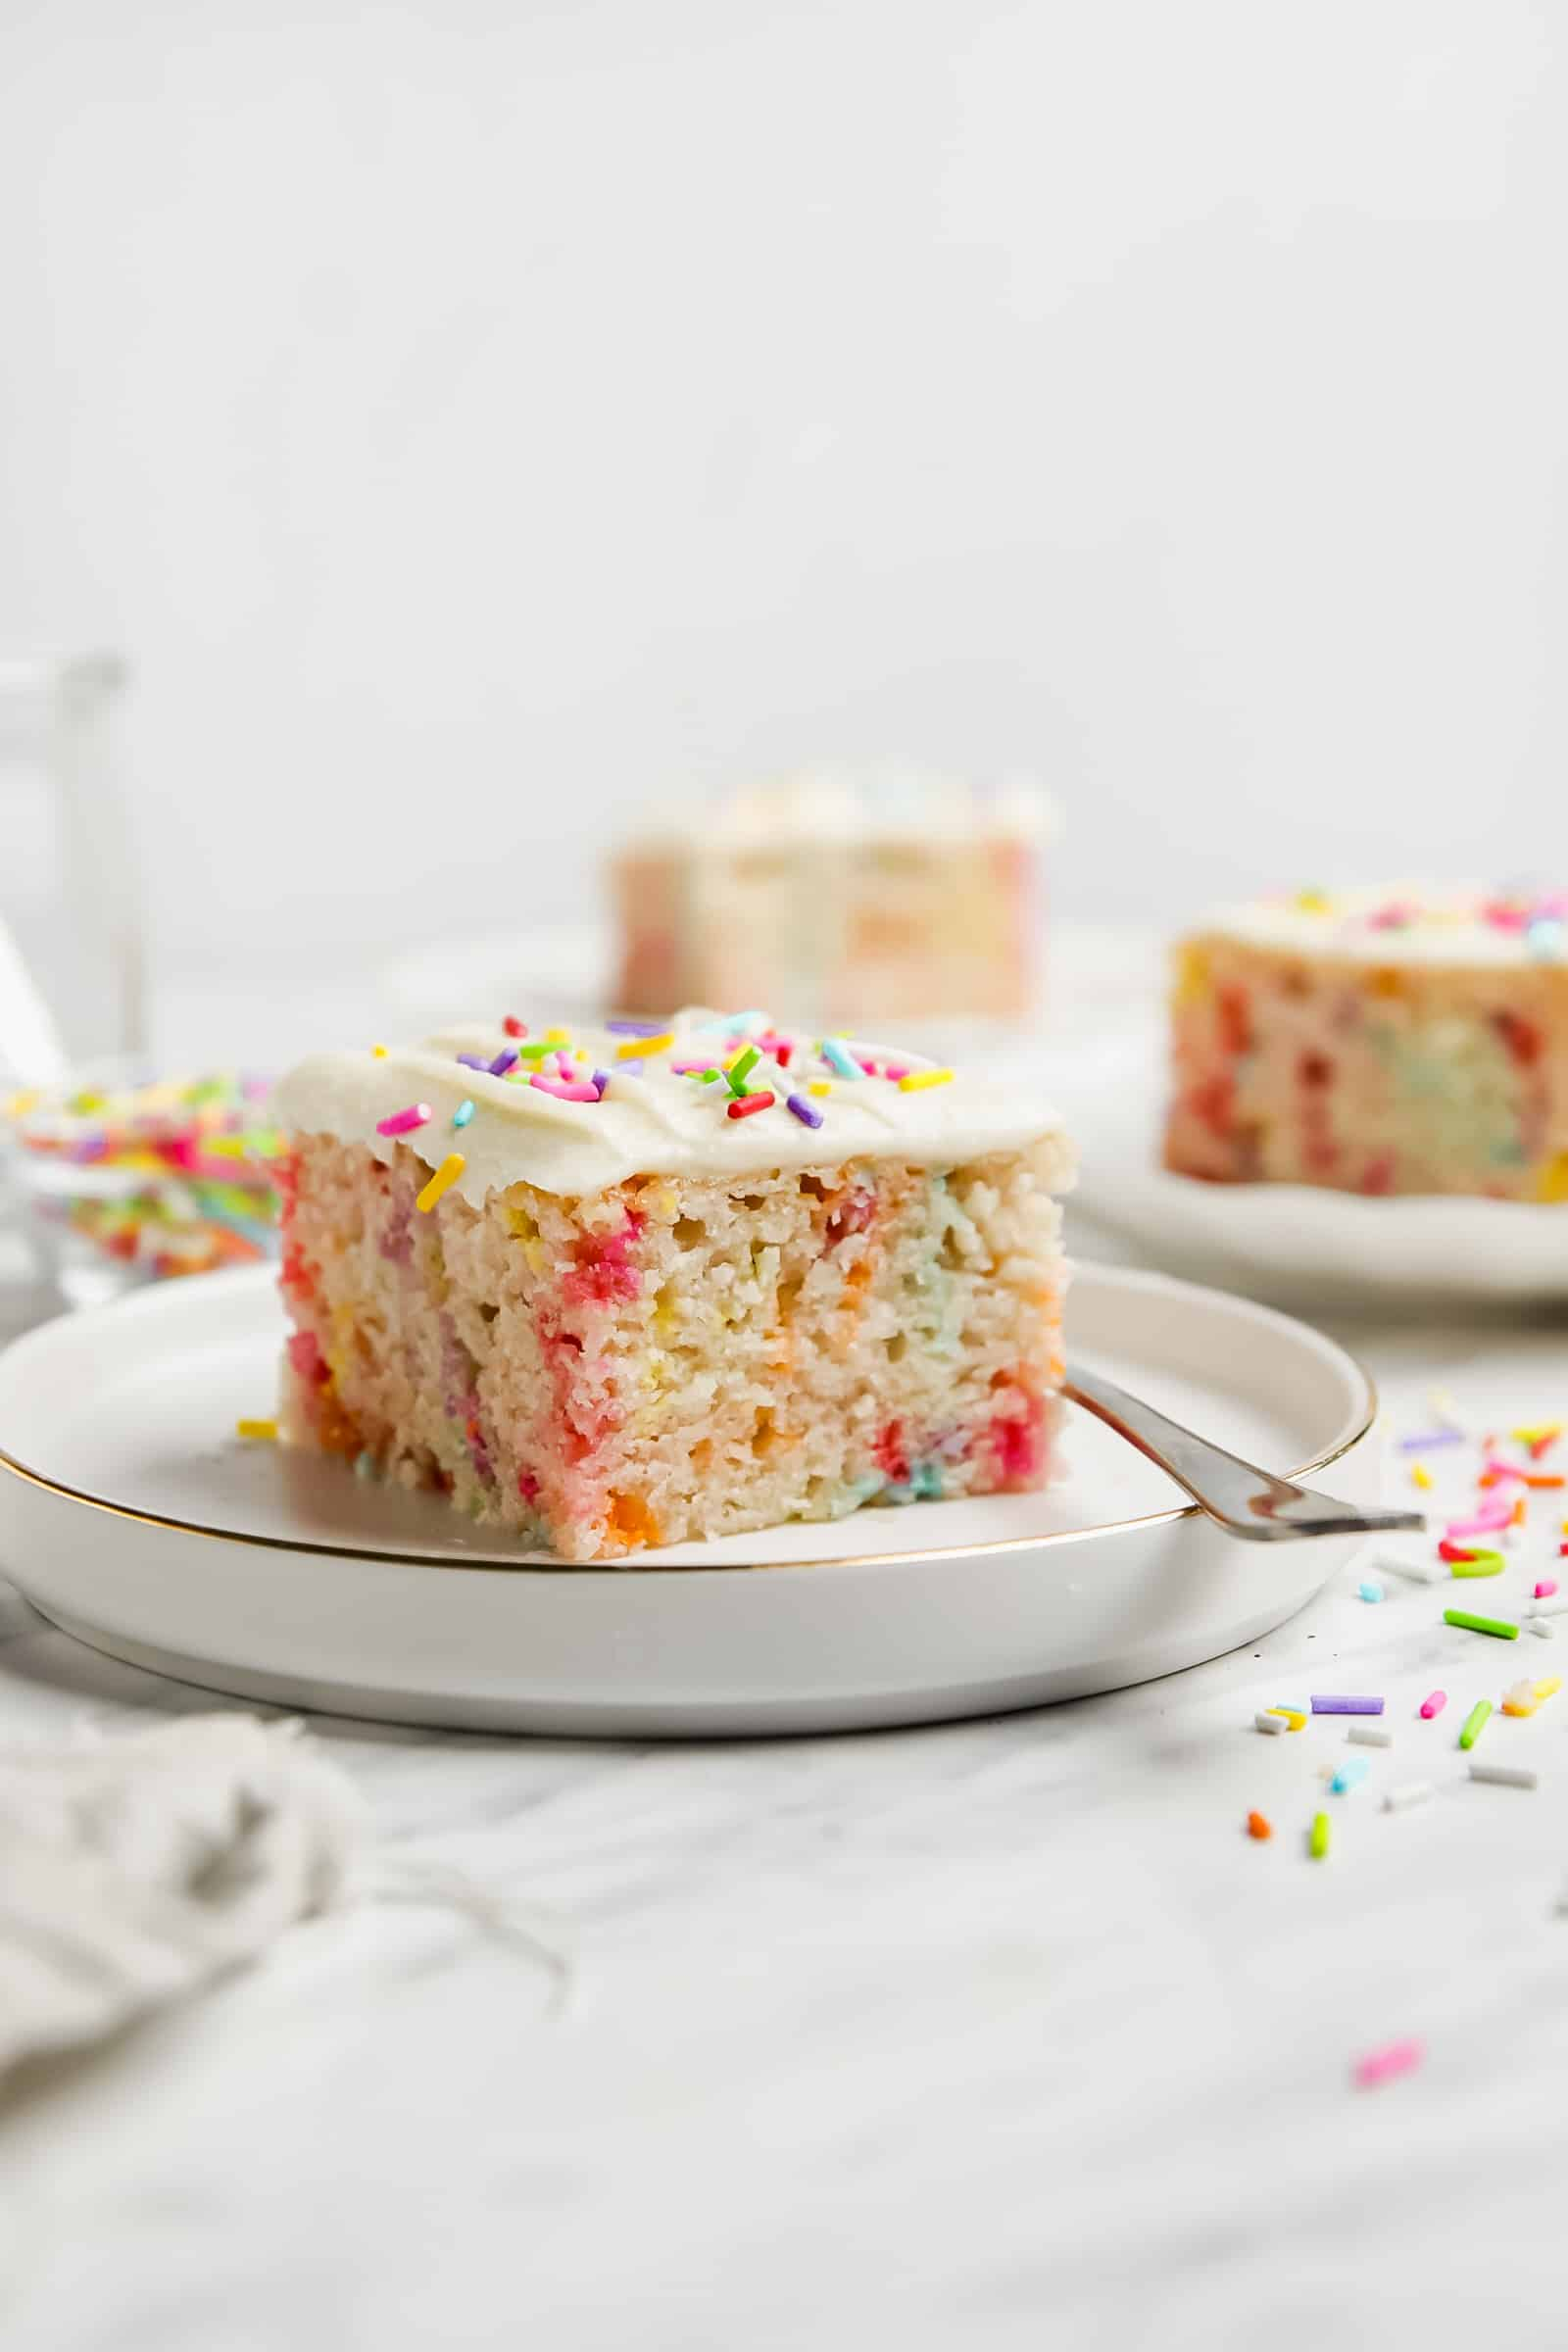 funfetti sheet cake slice on a plate